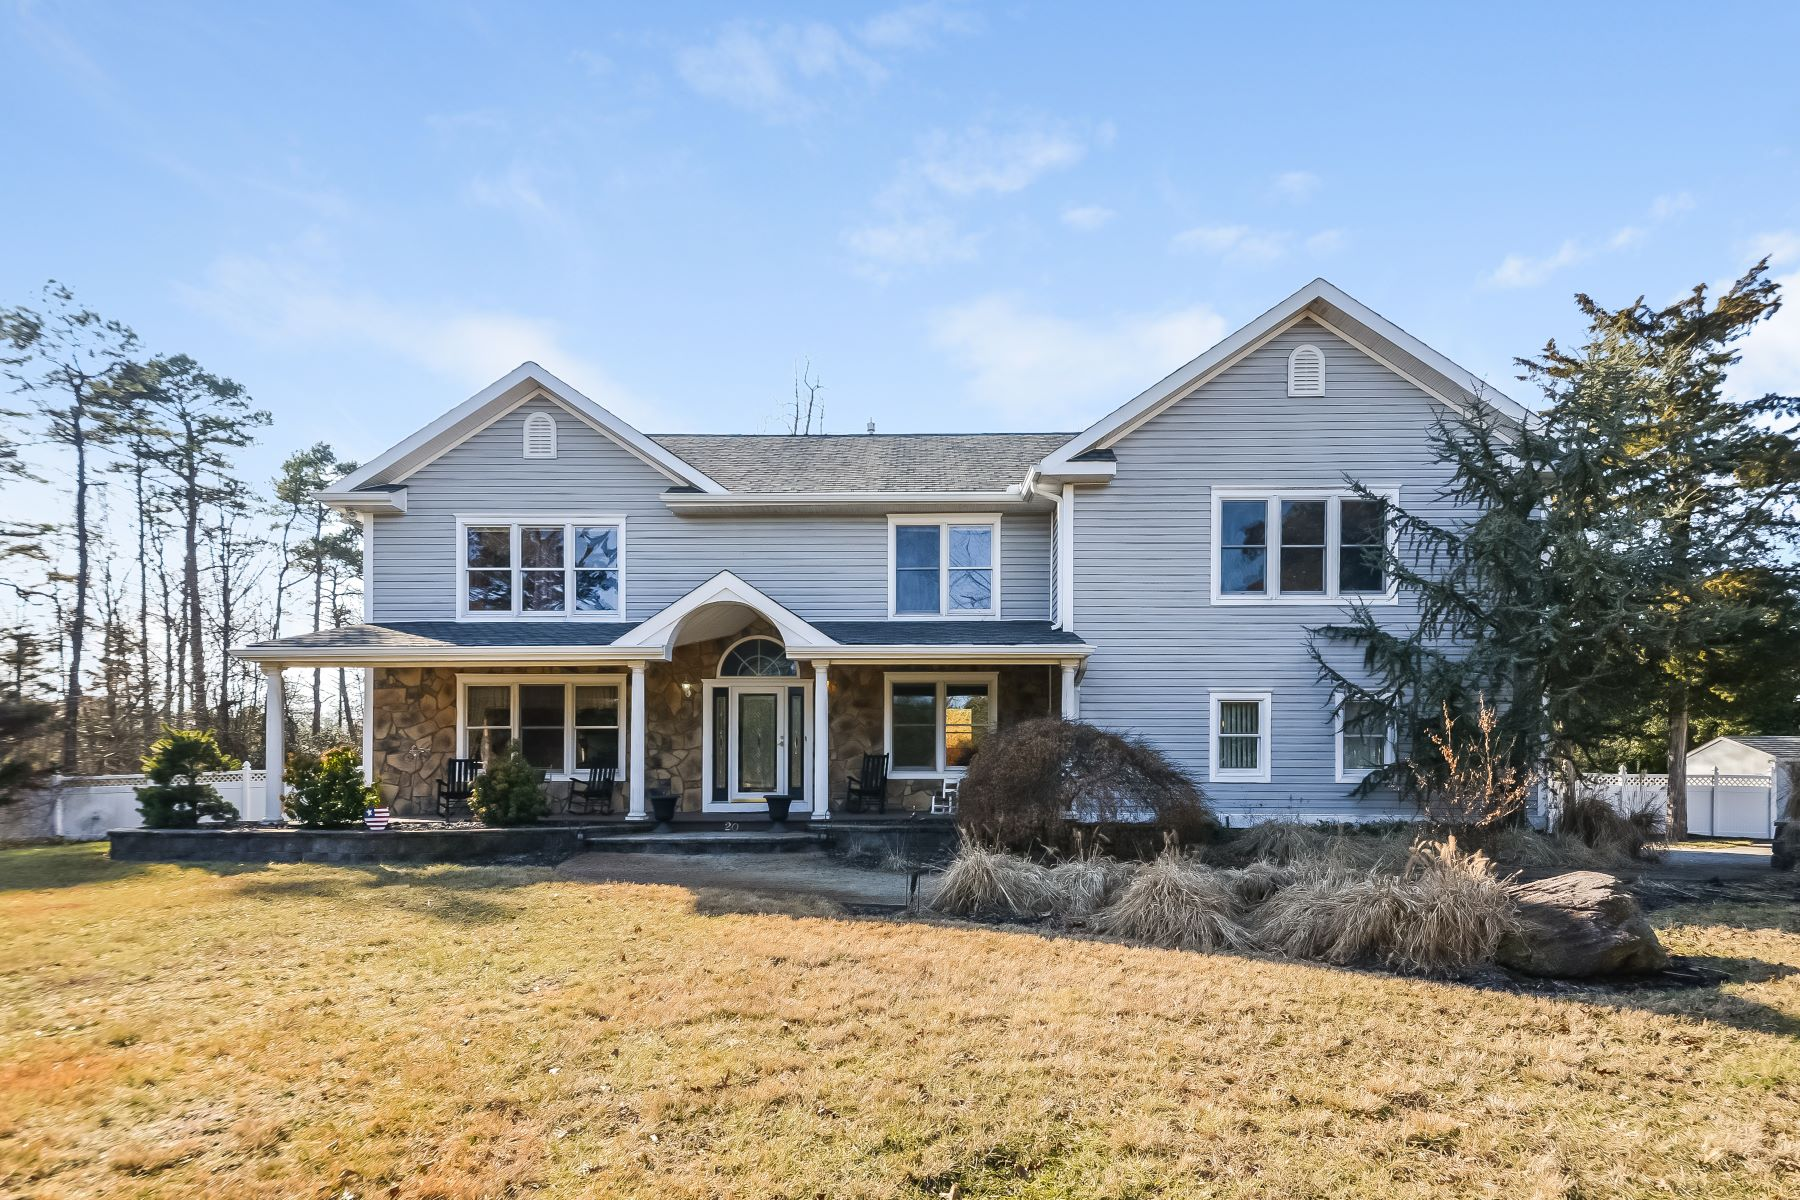 Single Family Home for Sale at 20 Tyler Rd Ocean View, New Jersey, 08230 United States